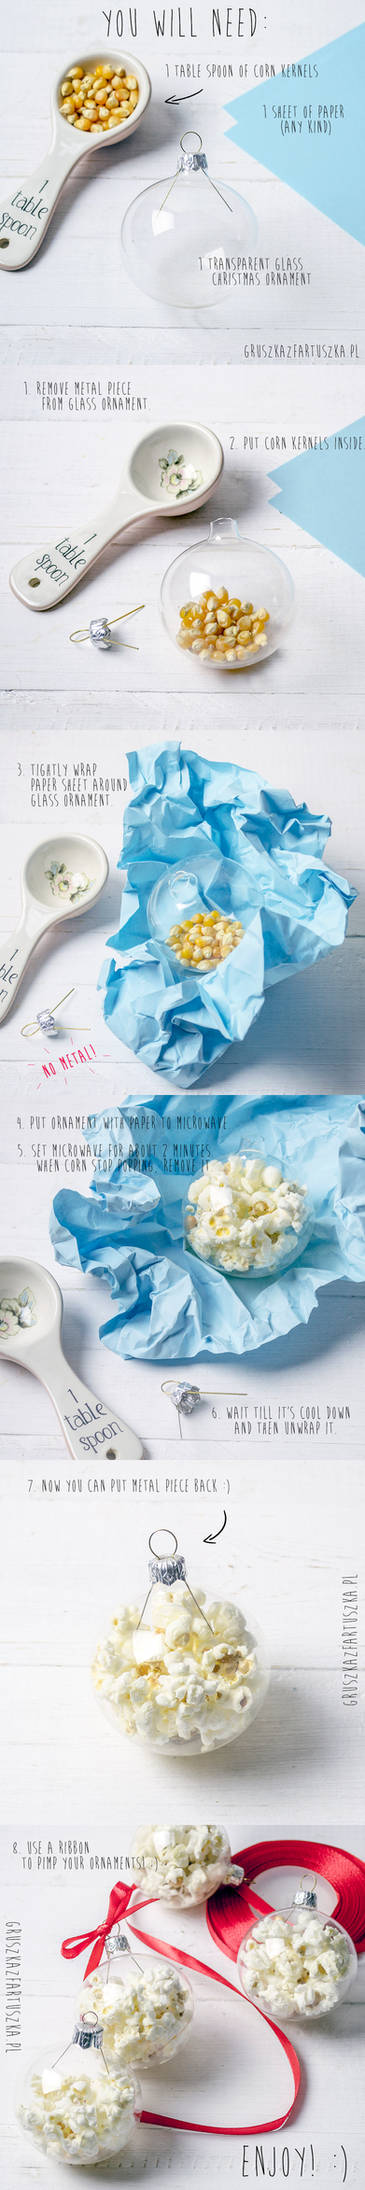 popcorn glass ornament